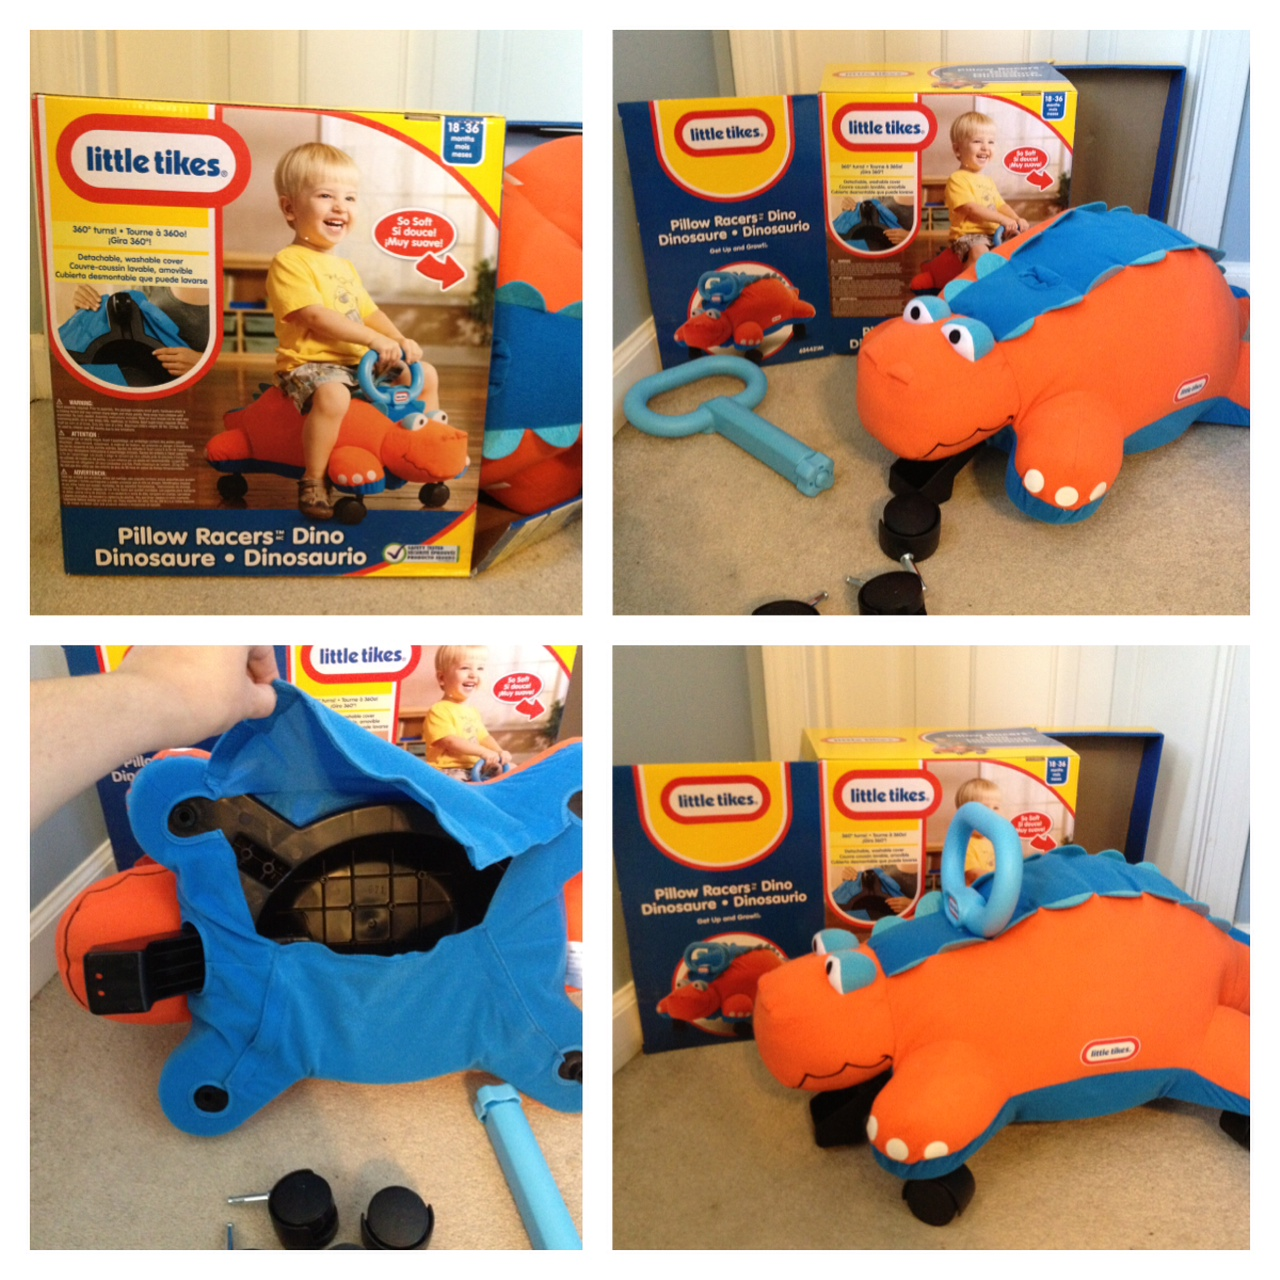 New! Little Tikes® Pillow Racers™